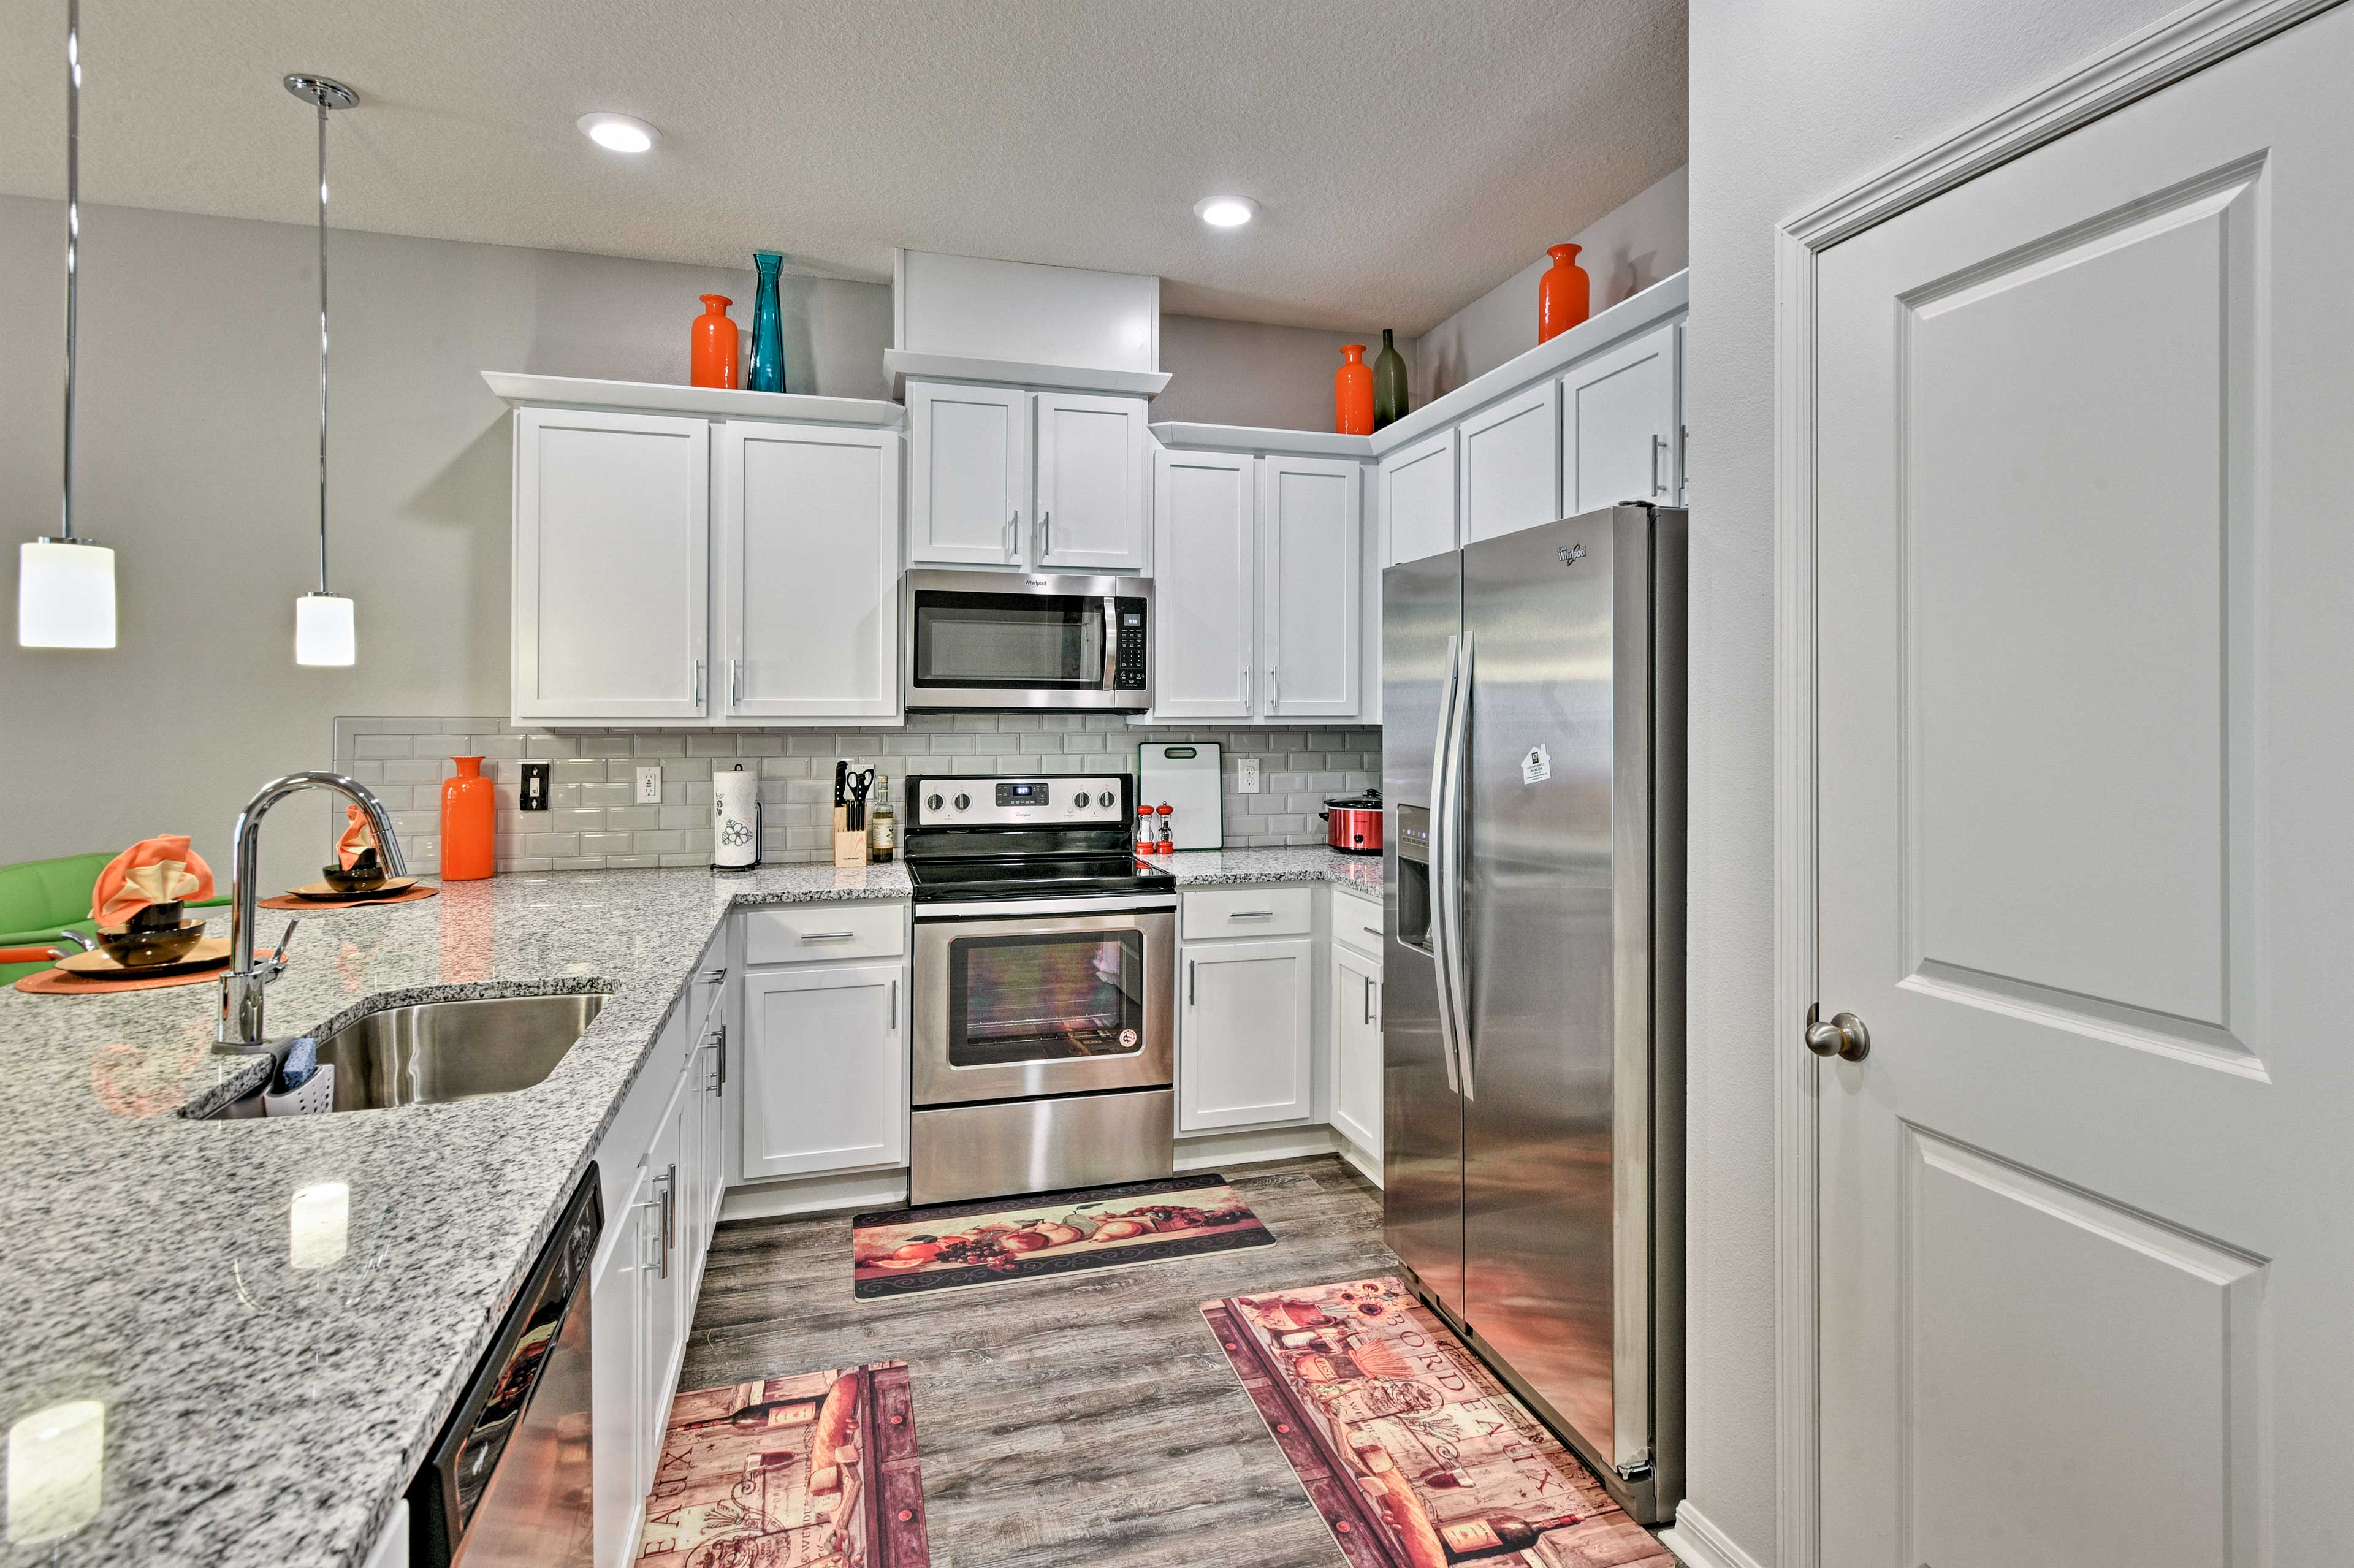 The stainless steel appliances will make cooking a breeze.